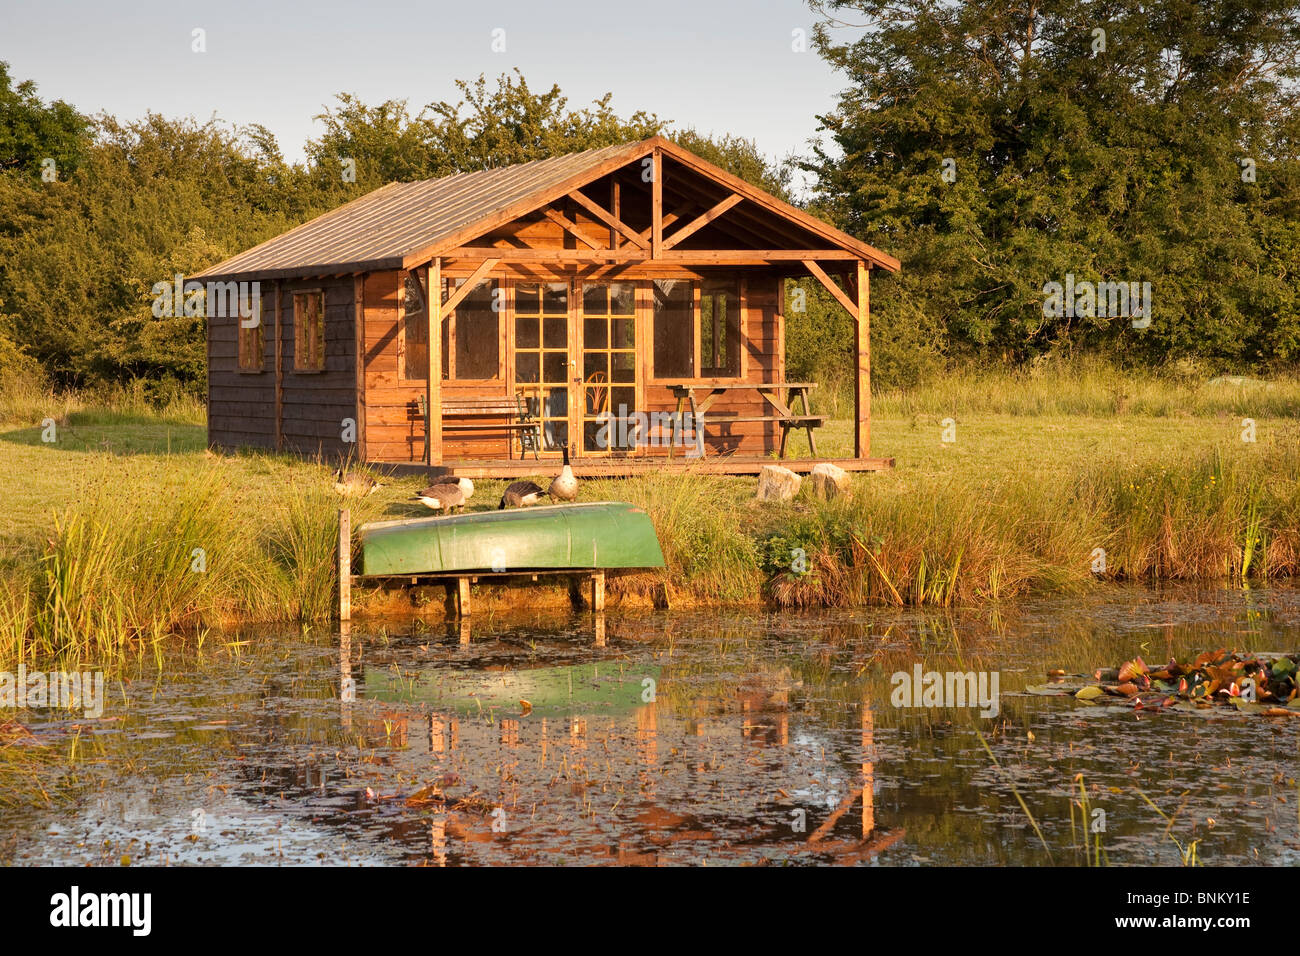 A summerhouse beside a lake, Wiltshire, England - Stock Image